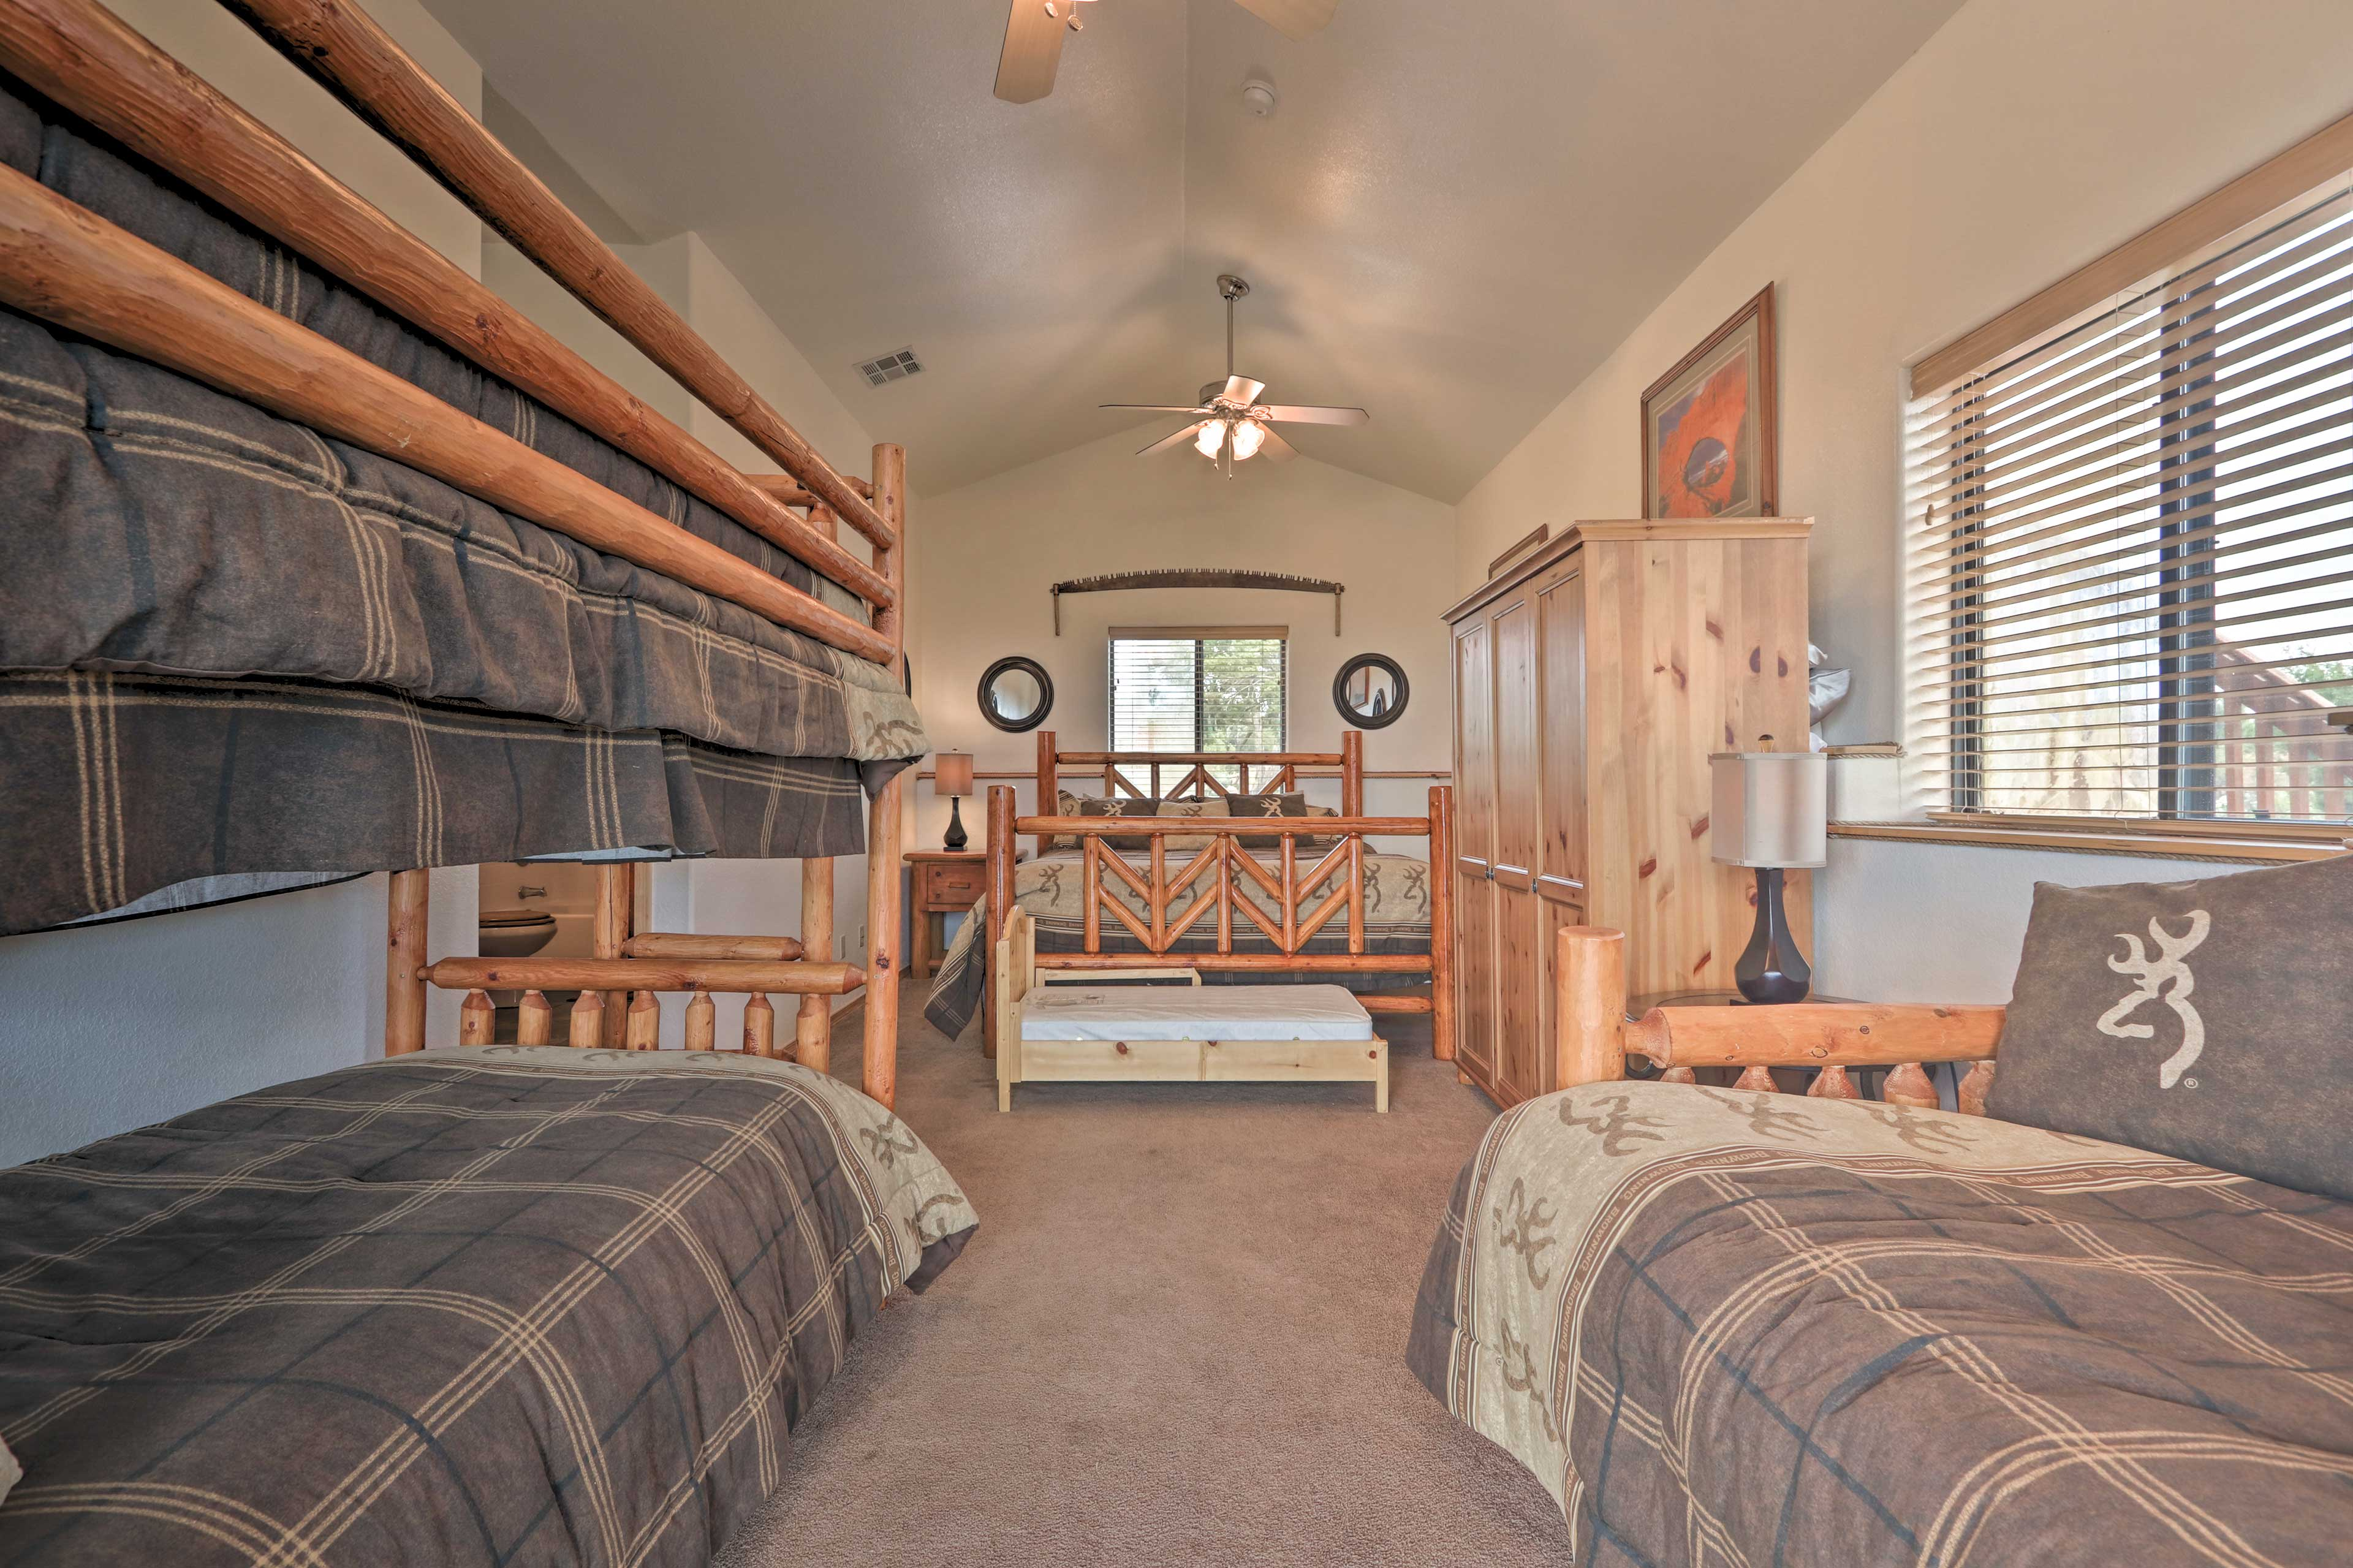 The 4th bedroom easily sleeps 6 between a king bed, twin bunk, and 2 twin beds.